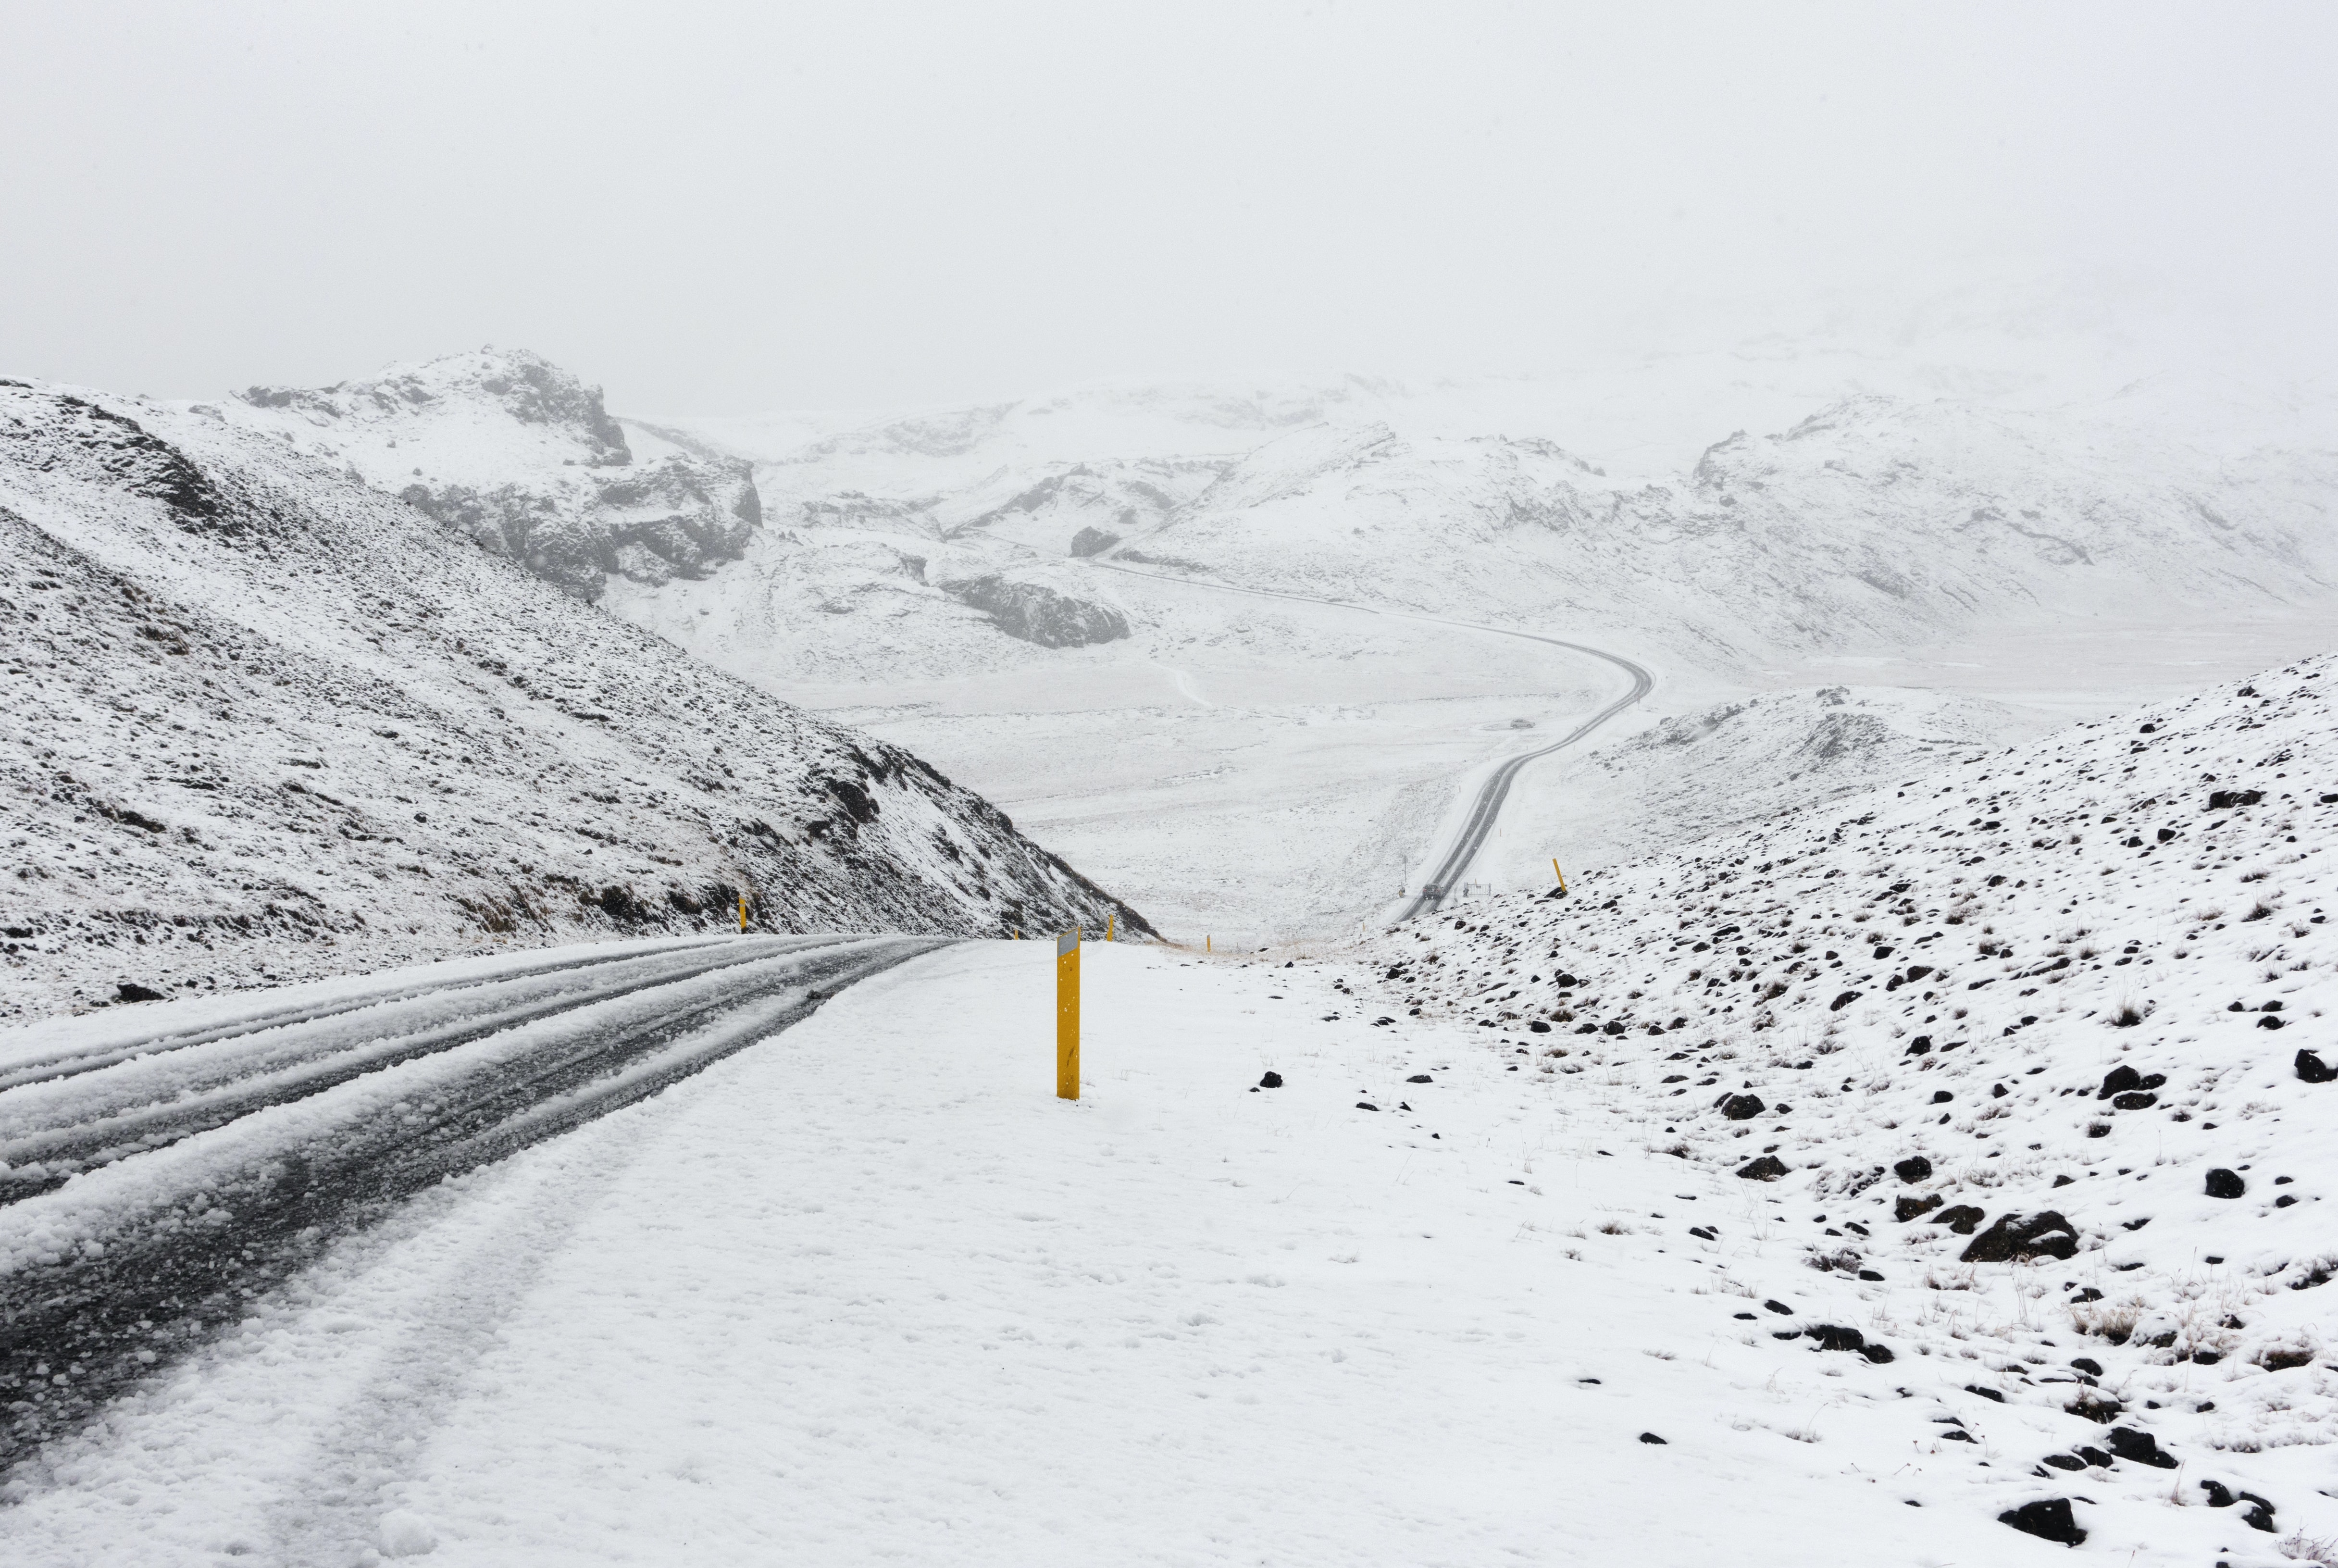 We were travelling in Iceland when a blizzard started